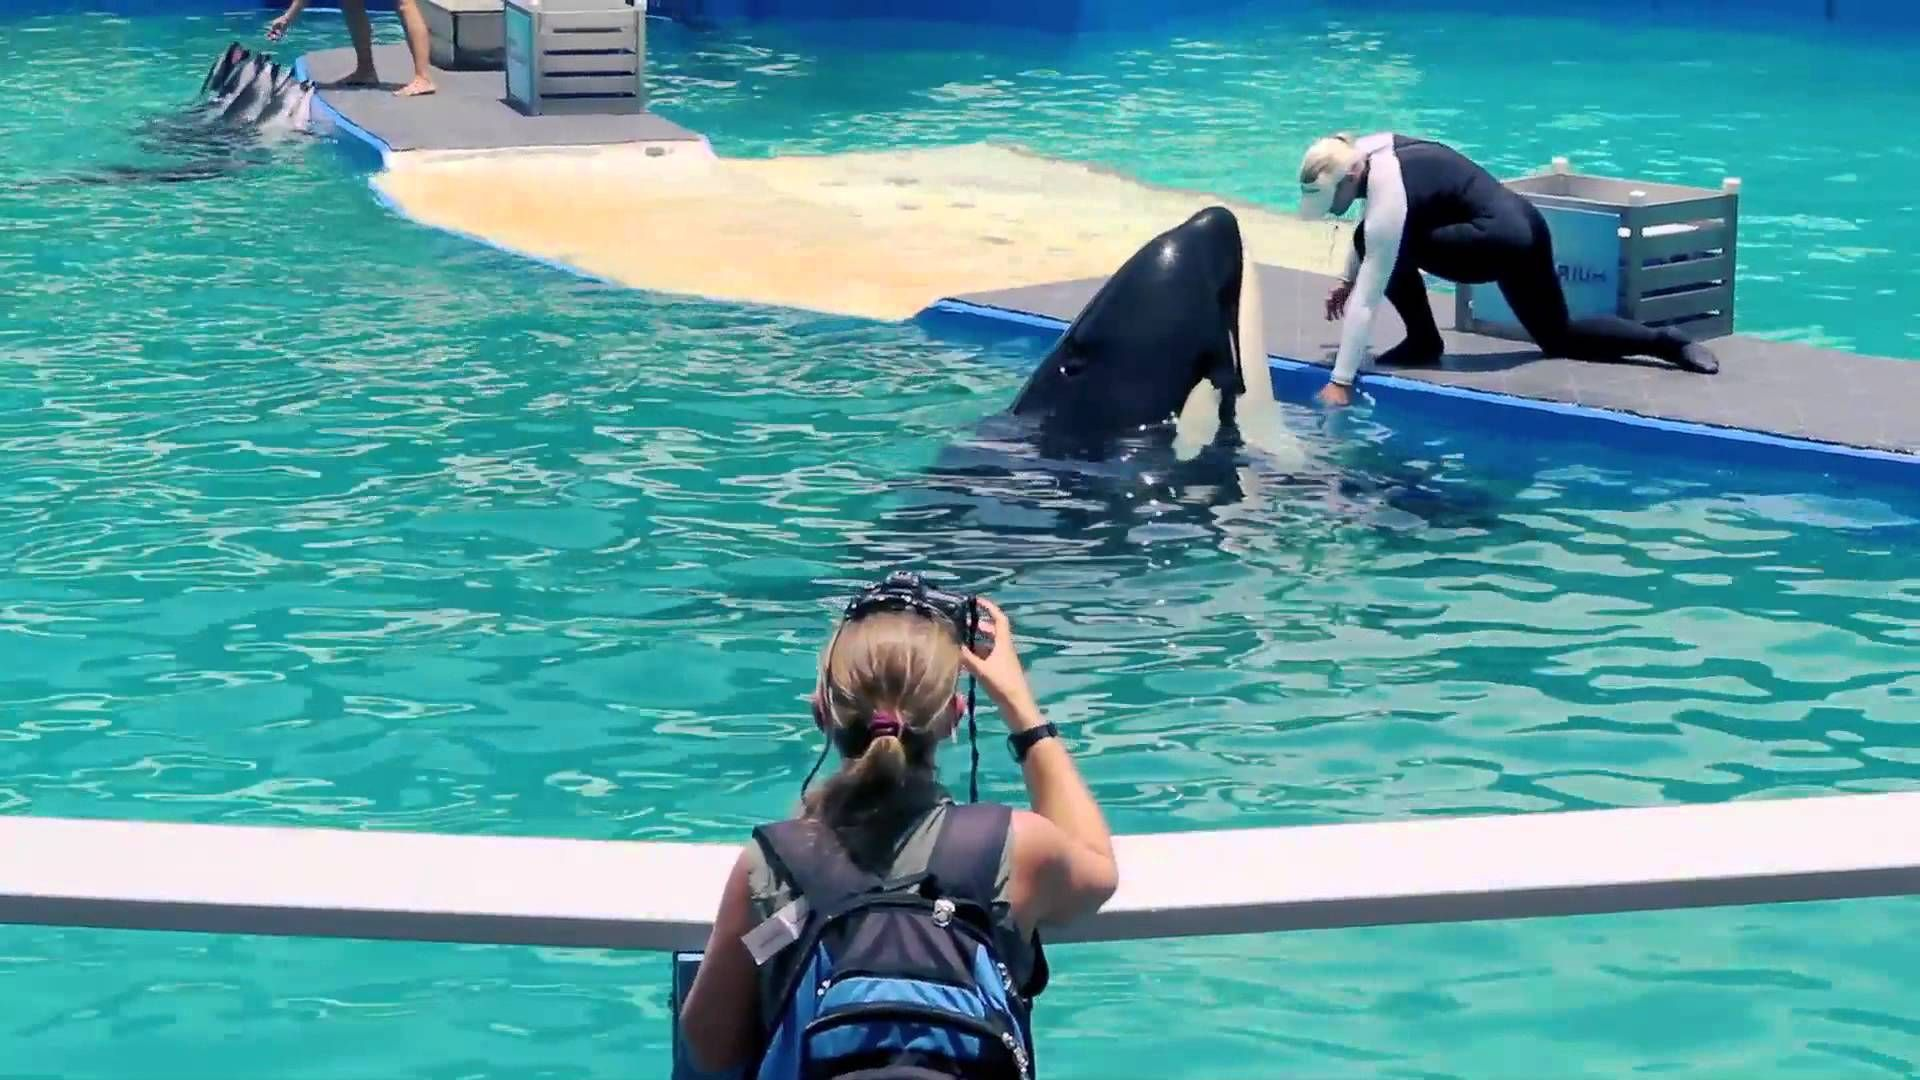 A Day in the Life of Lolita, the Performing Orca repin if you wont be buying a ticket again